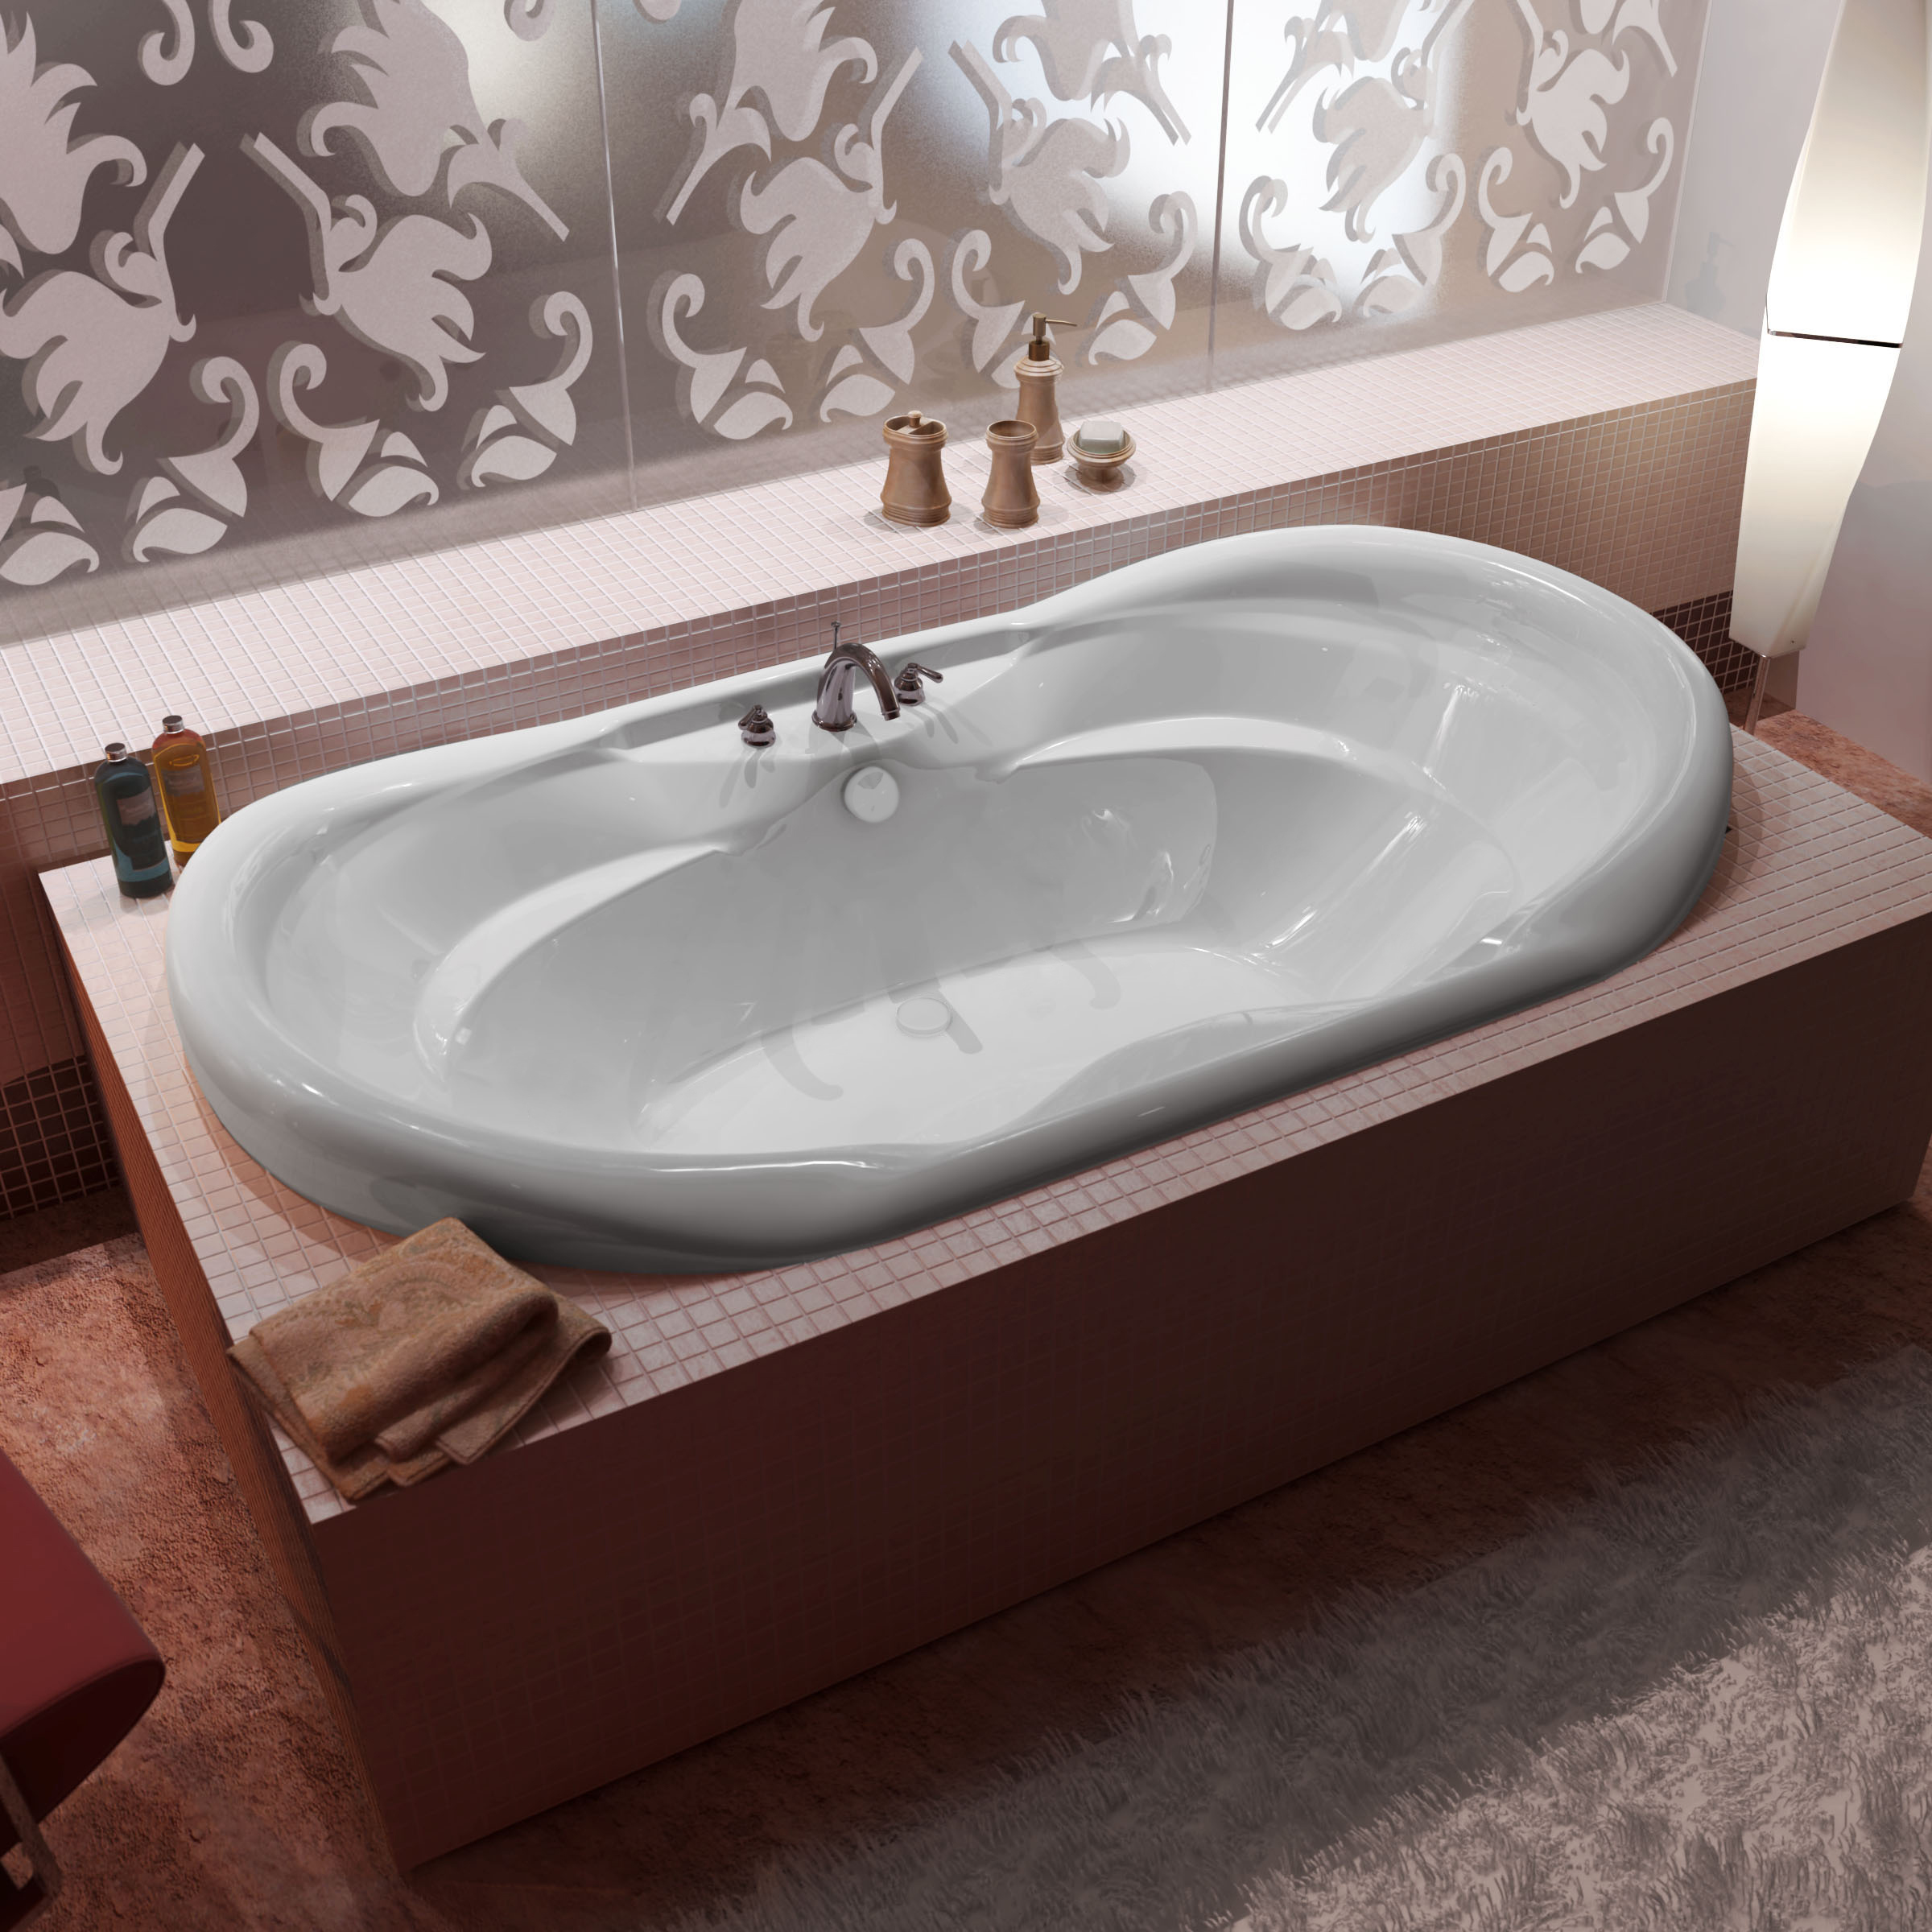 Venzi Aline 70 x 41 Oval Bathtub with Center Drain